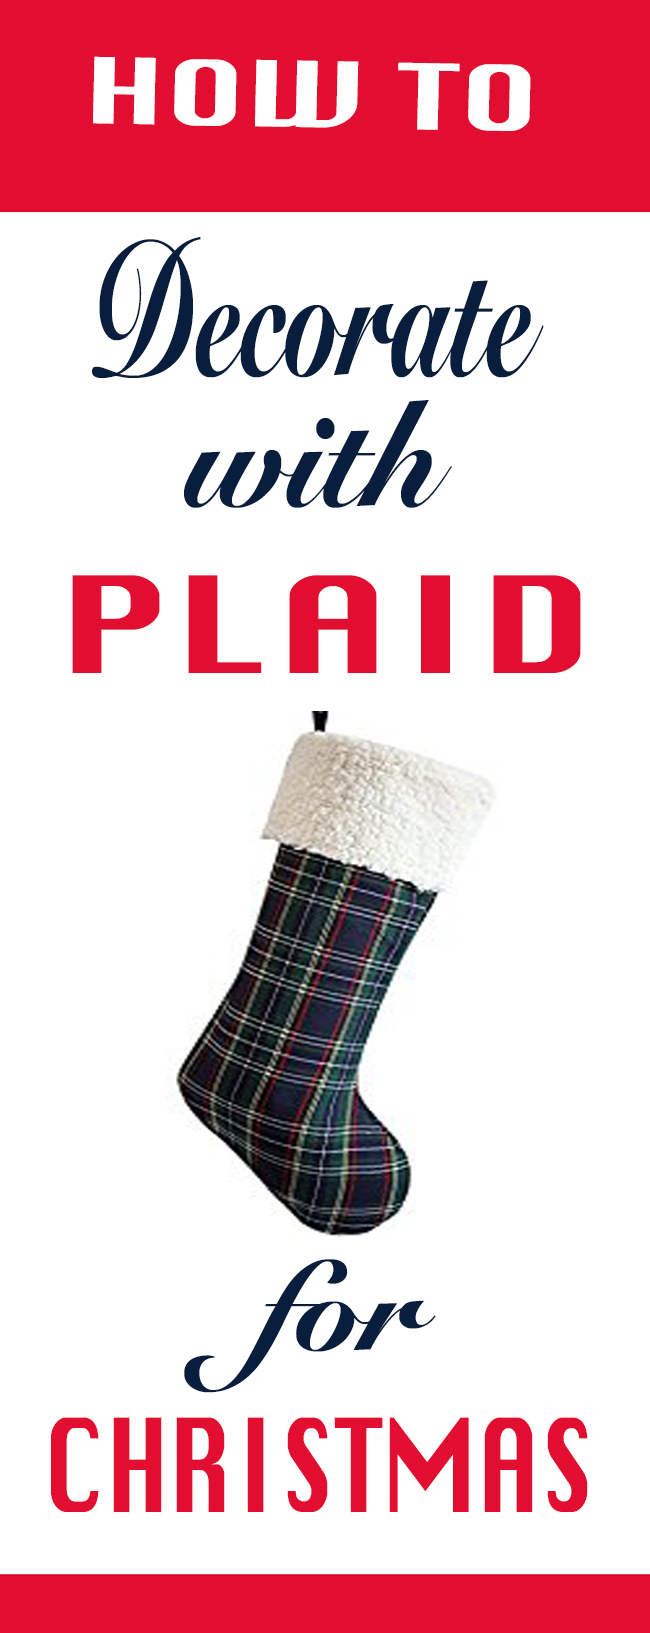 your-guide-for-decorating-with-plaid-for-christmas